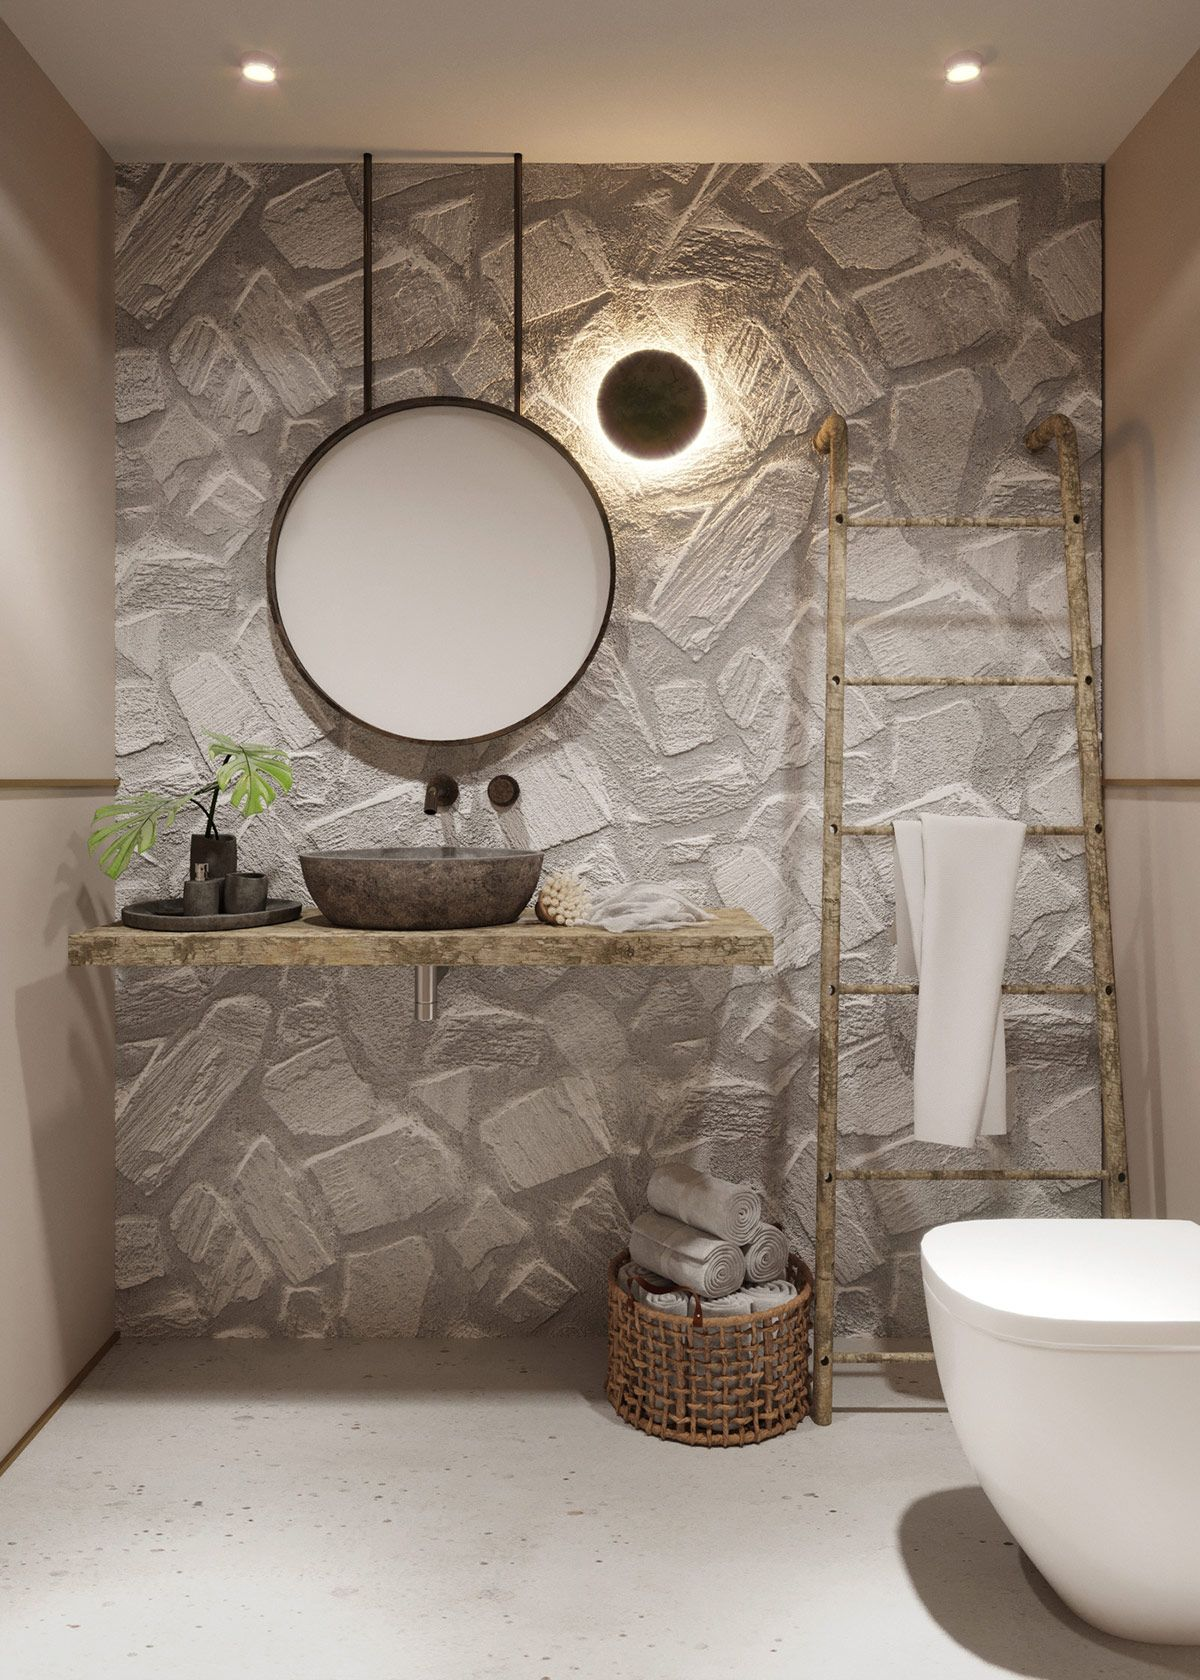 Three interiors with an ethnic rustic mix